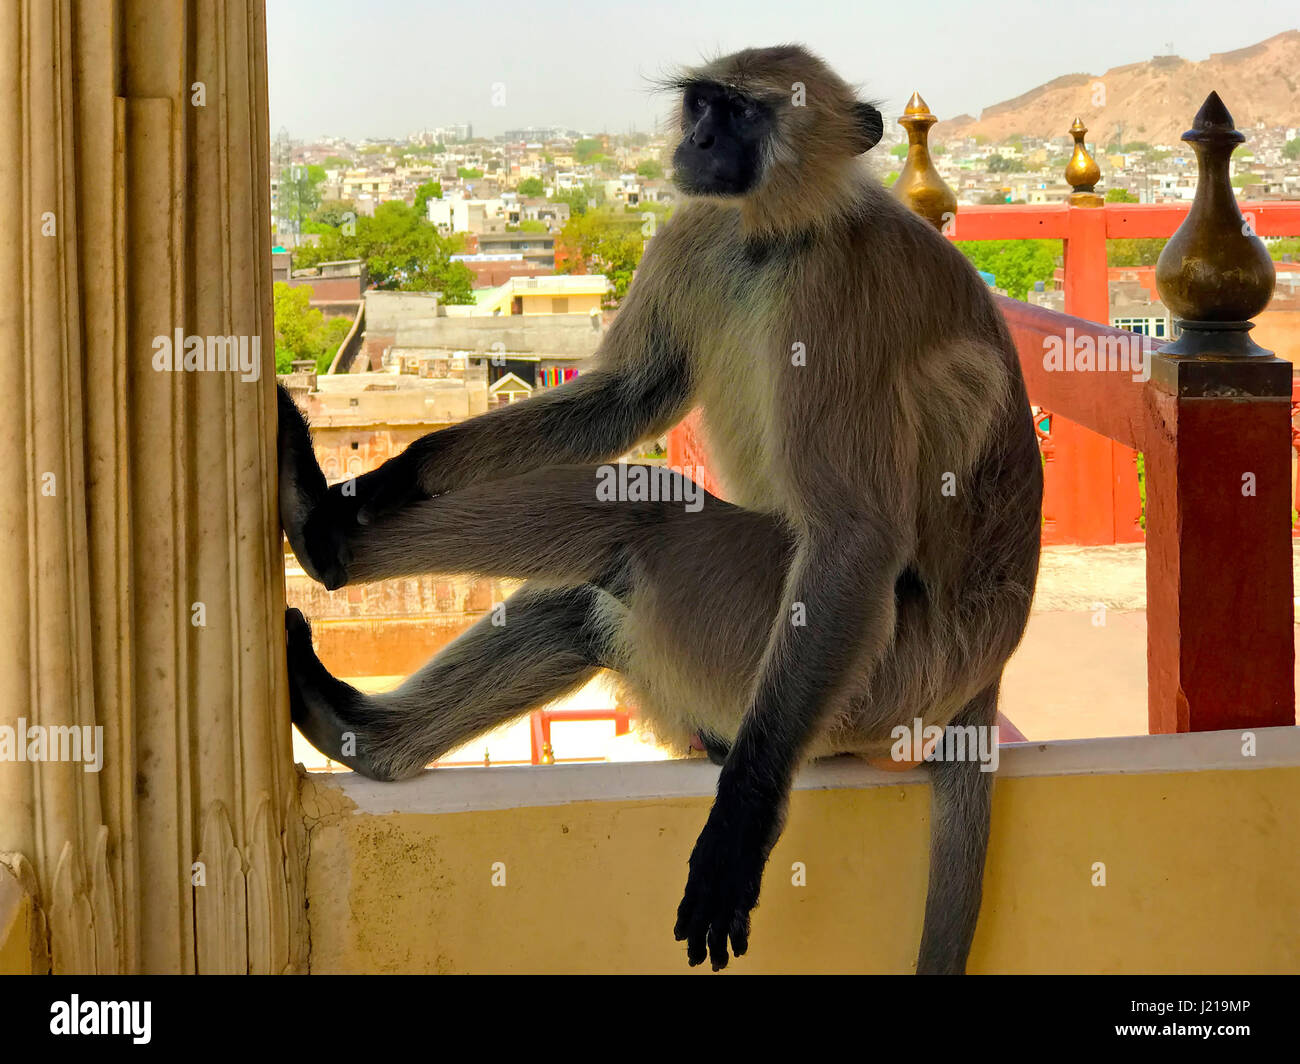 Major Tourist Spots in Jaipur, Rajasthan, India Stock Photo